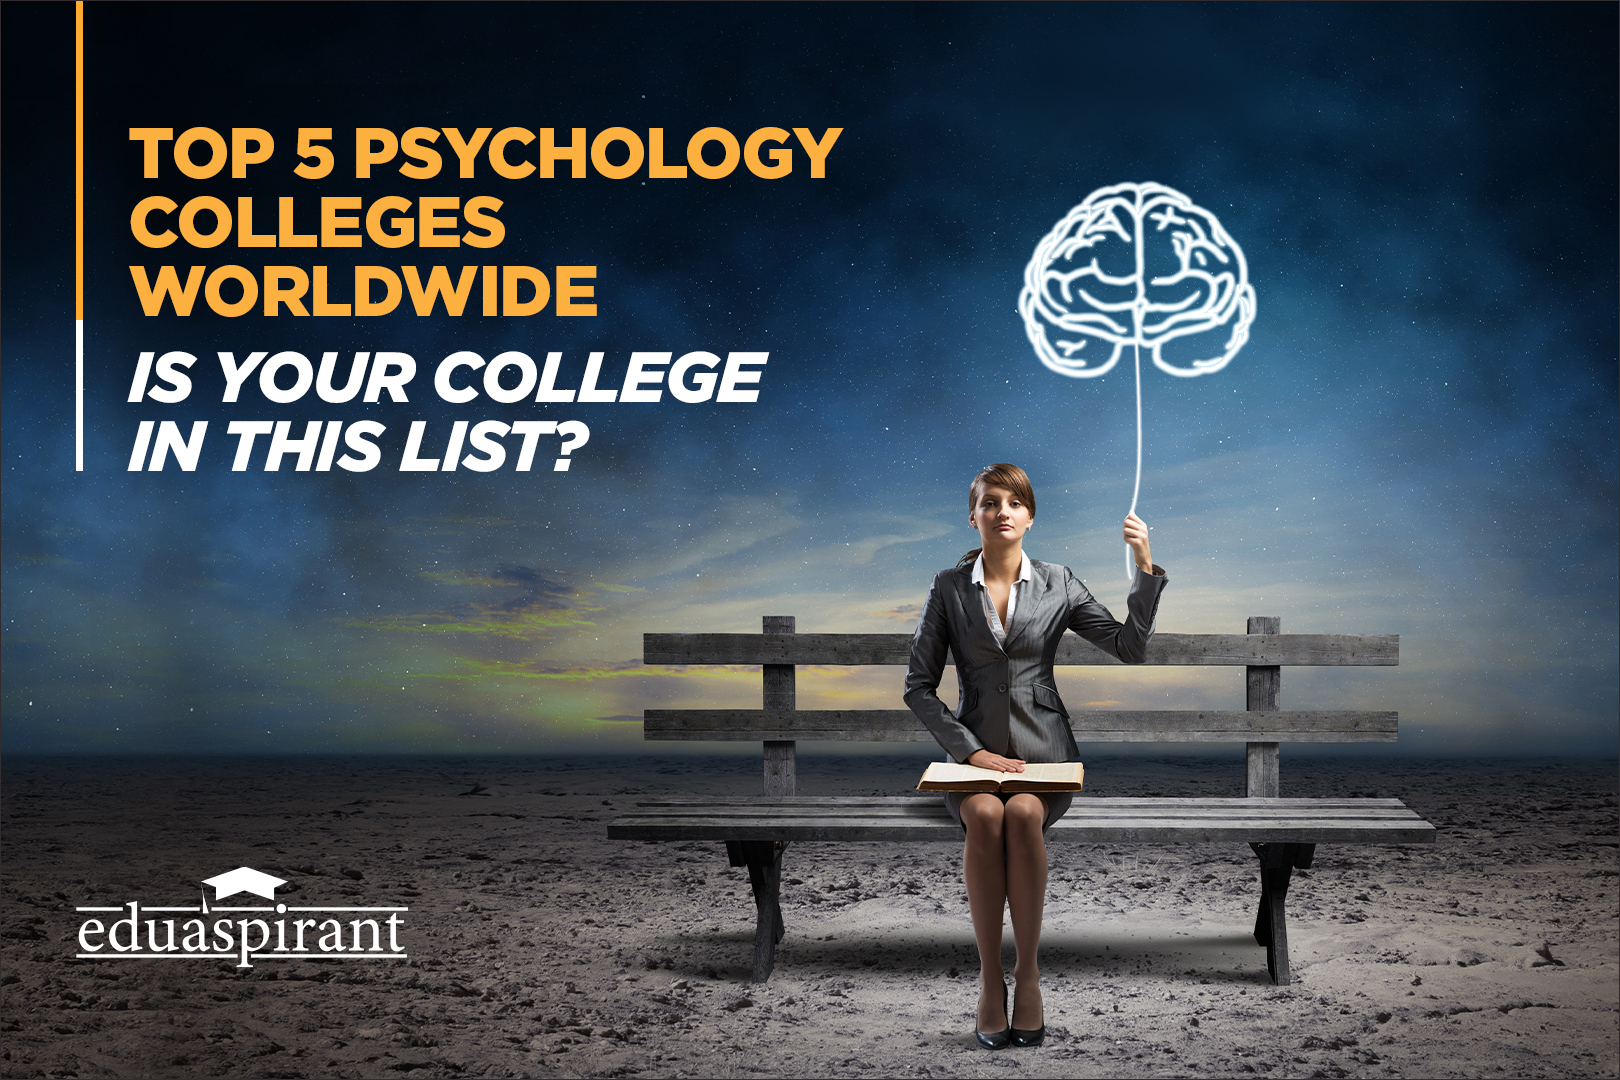 Students From These Top 5 Psychology Colleges Are Contributing to Make A Better World!